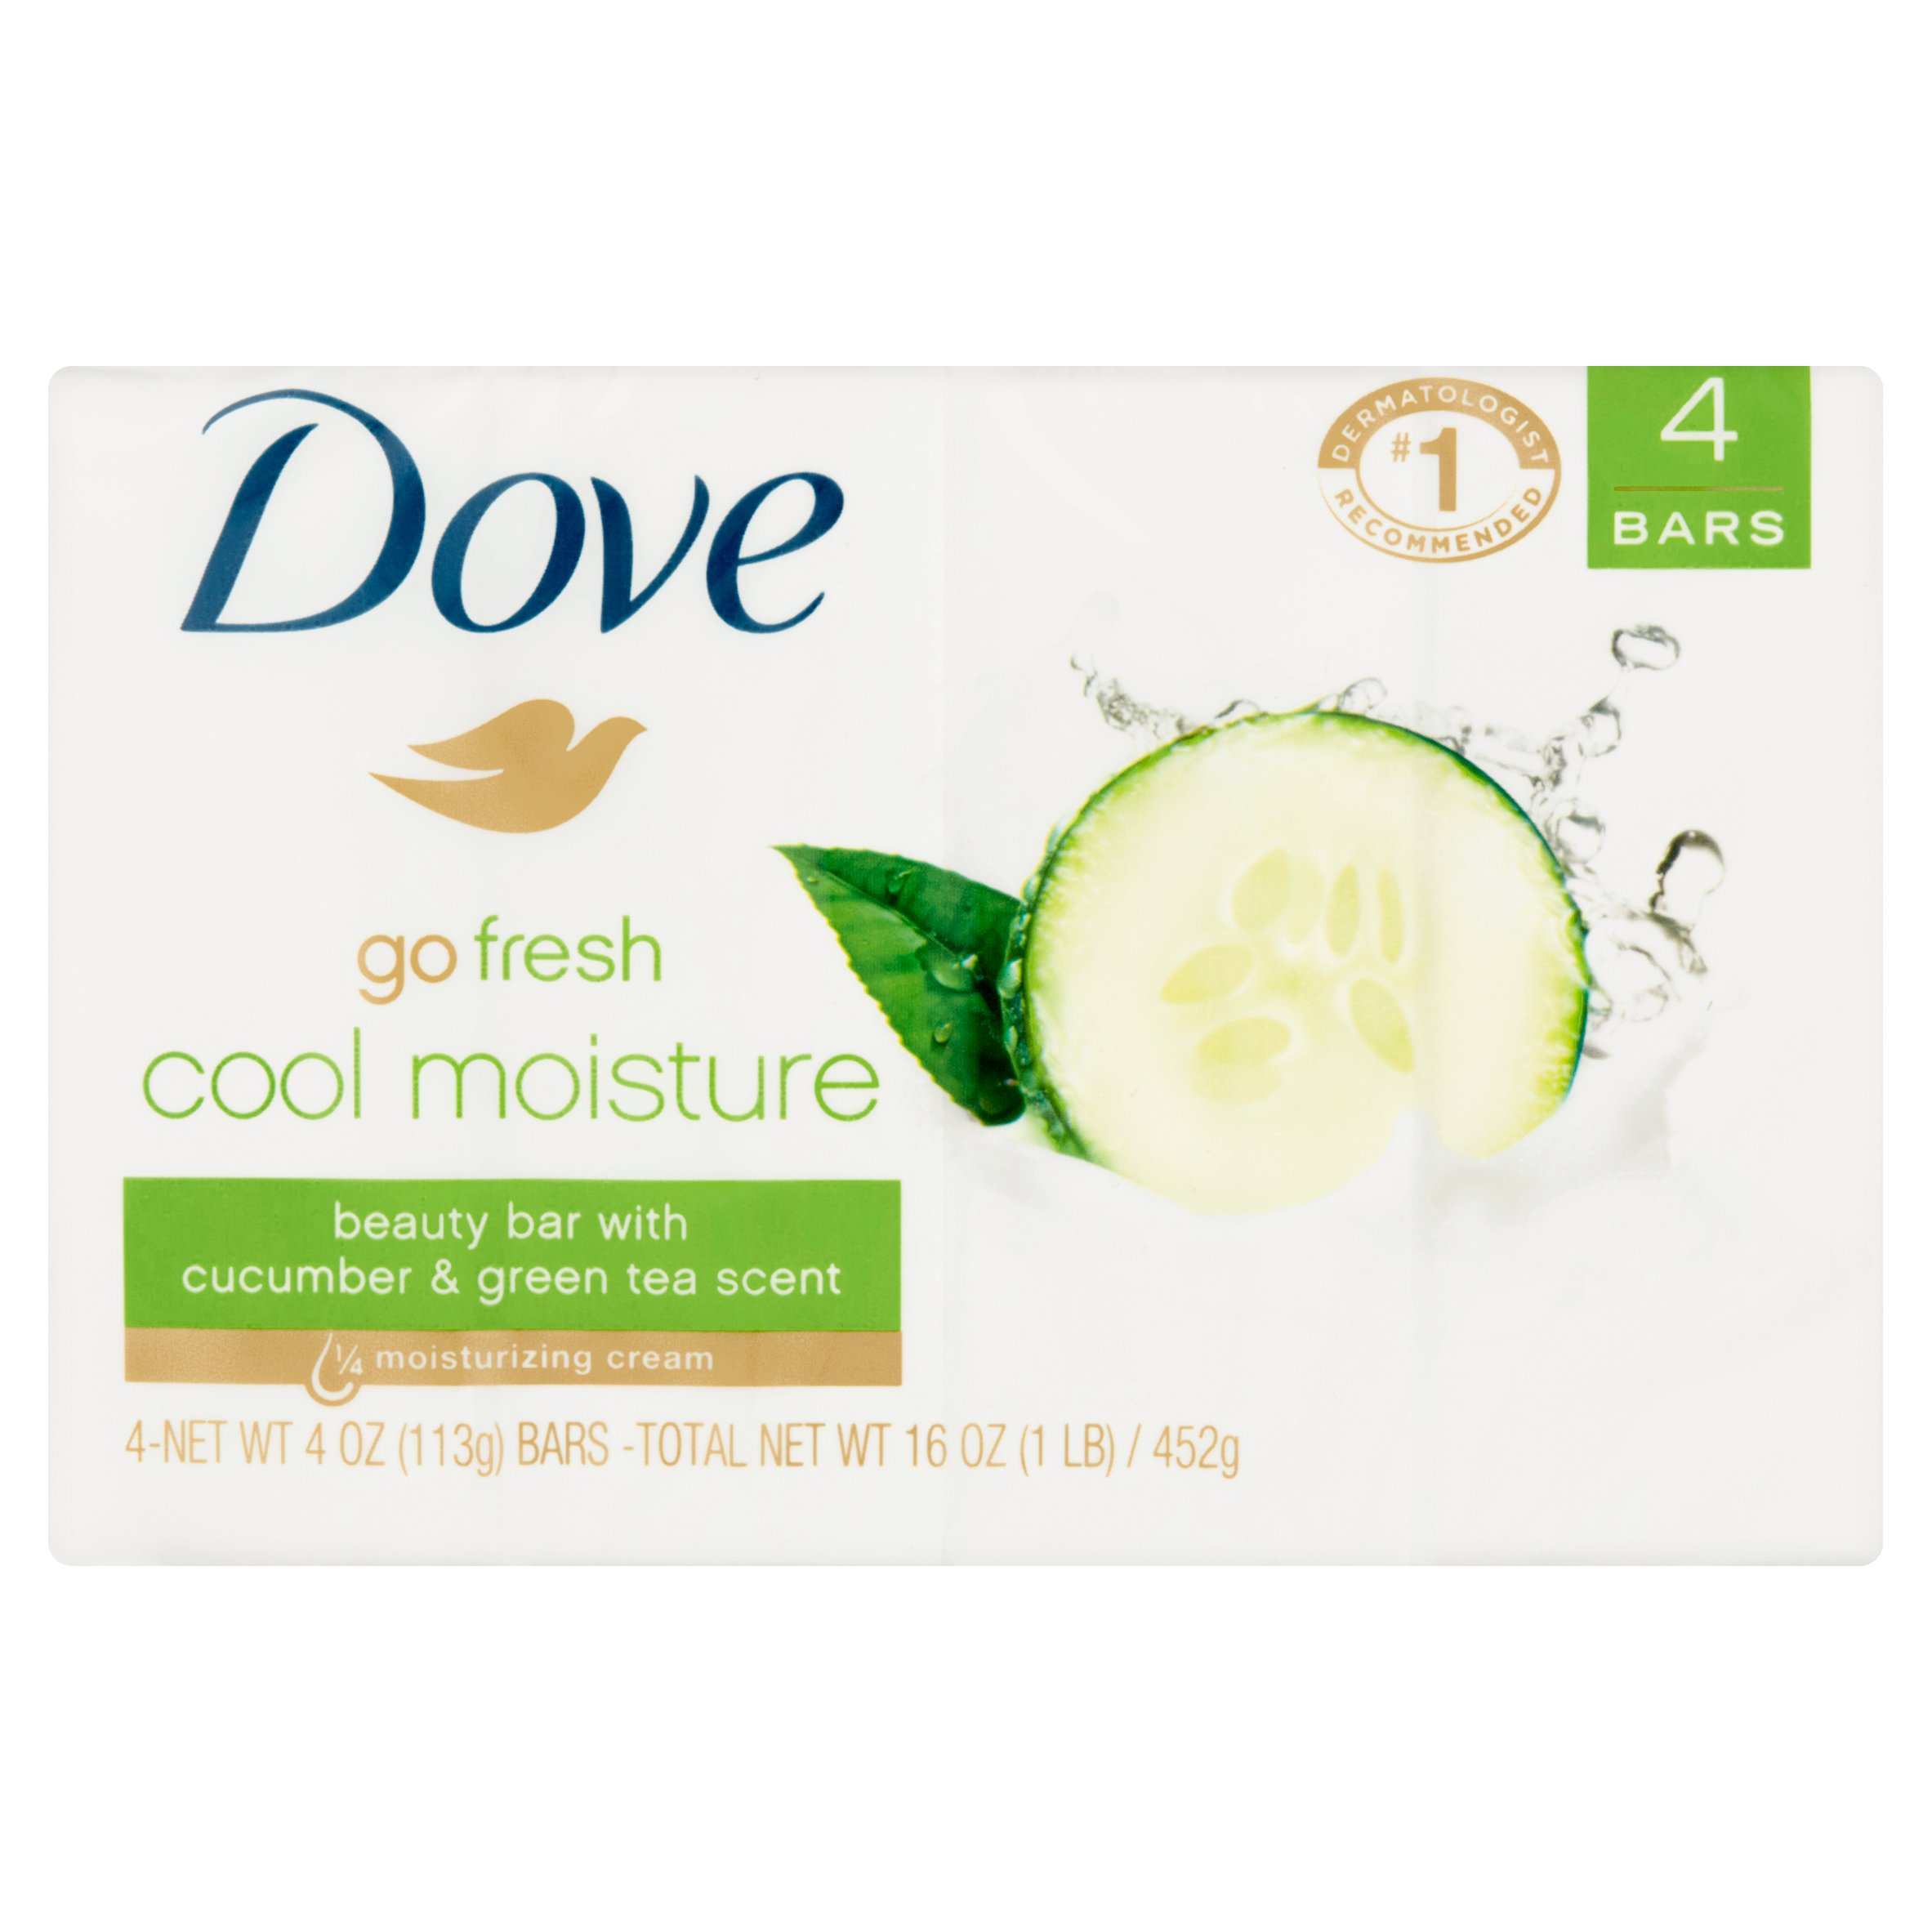 Dove Go Fresh Cool Moisture Beauty Bar Soap With Cucumber And Green Tea Scent, 4.25 oz, 4 ct - Walmart.com